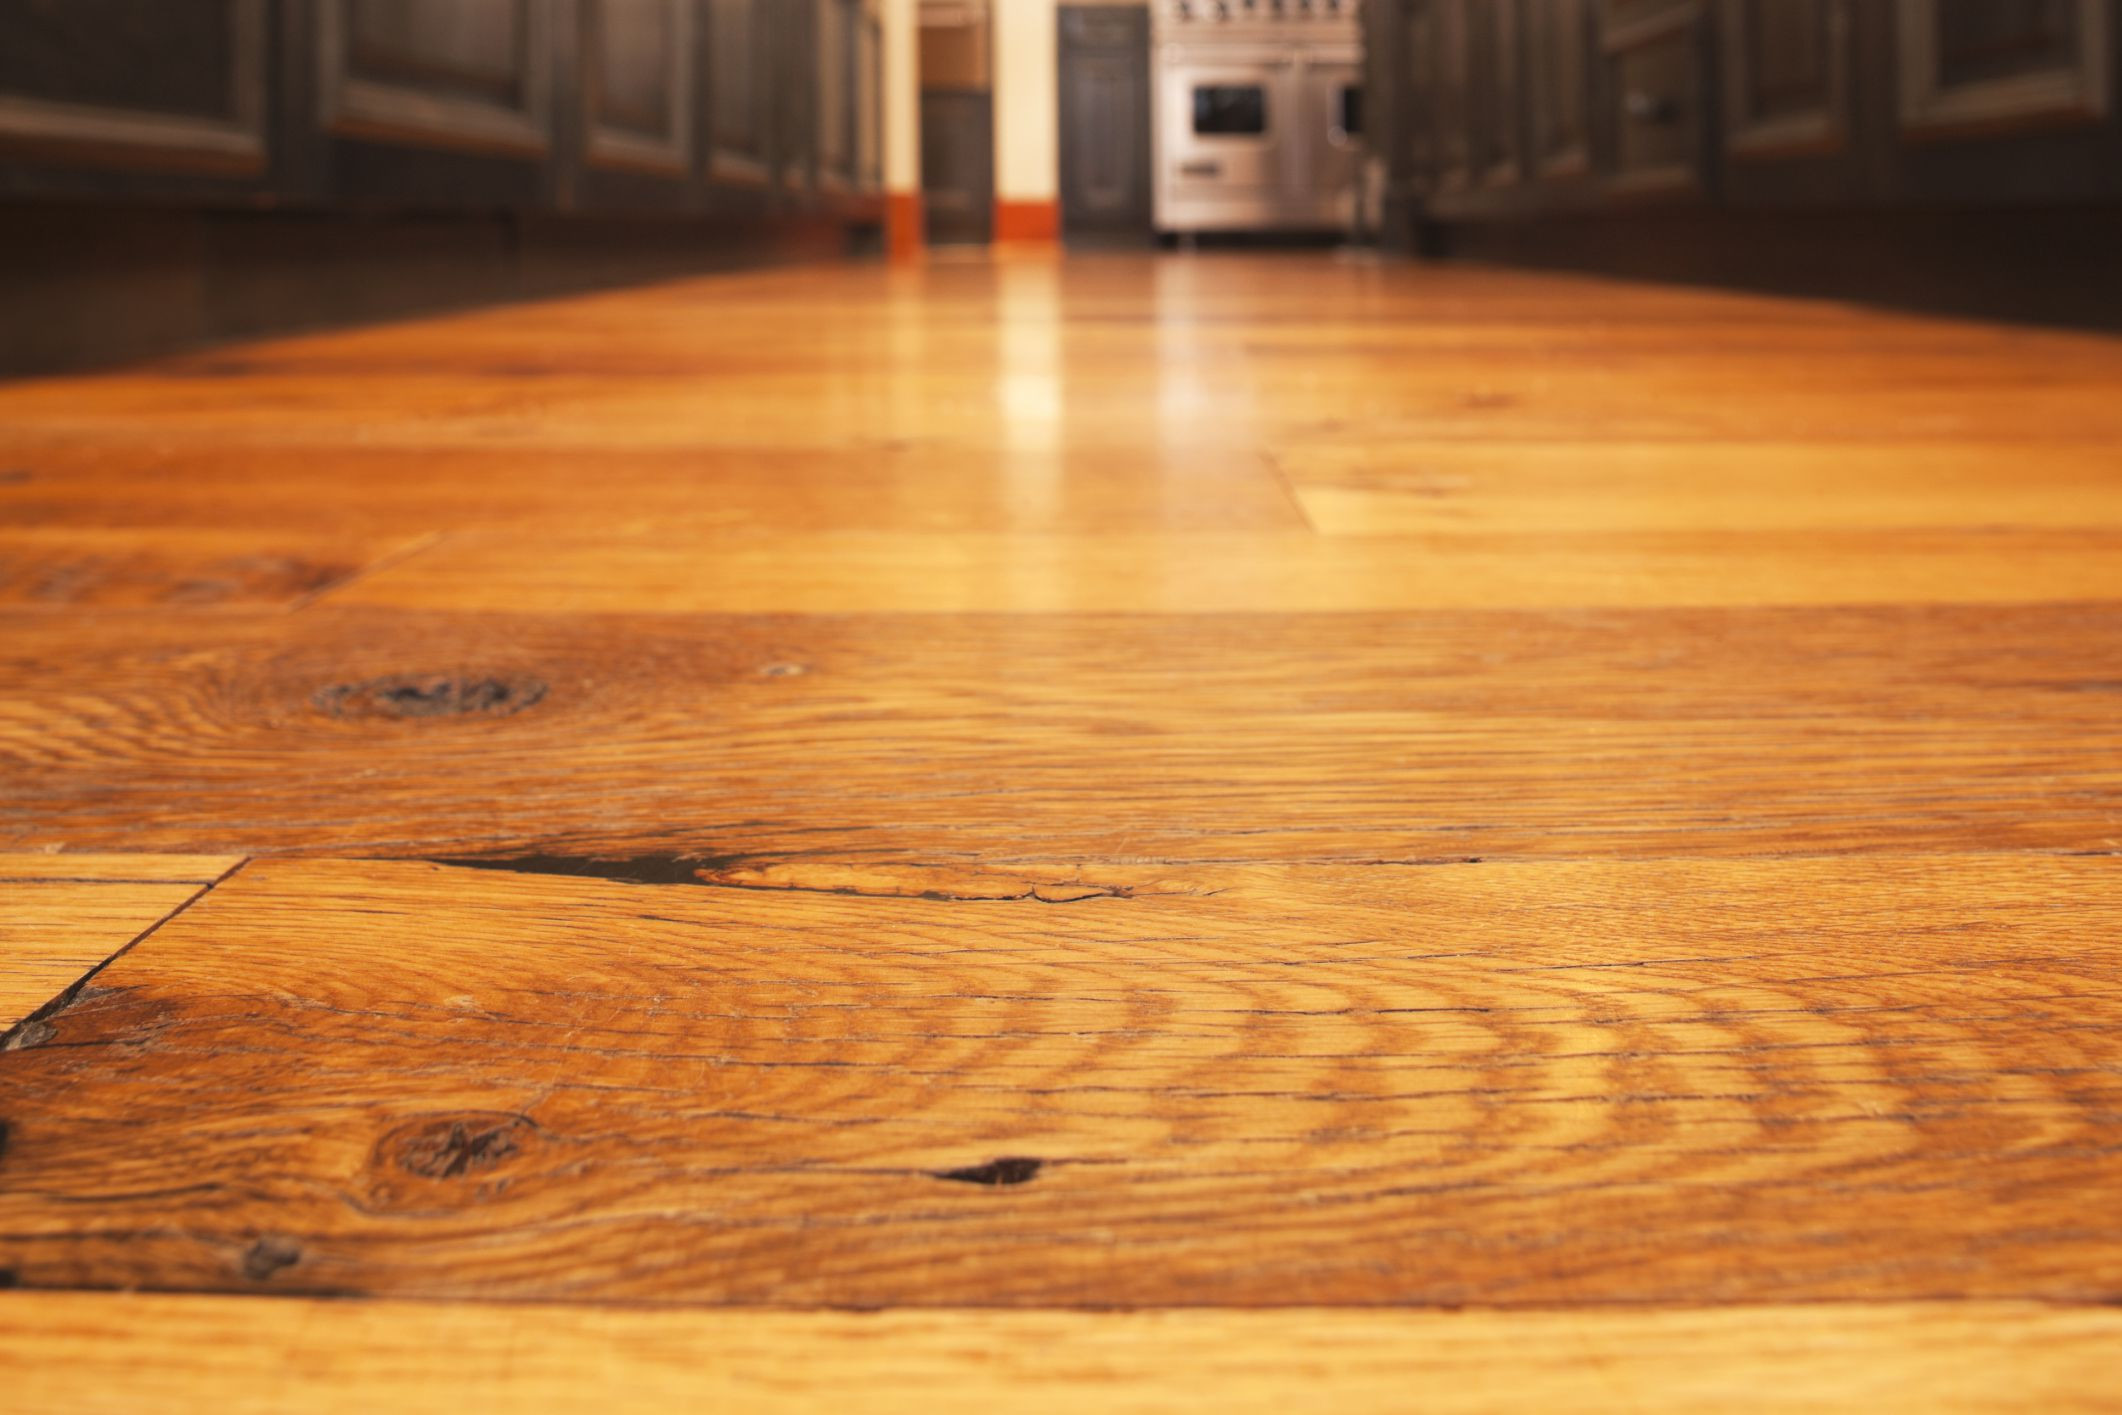 How to Fix Small Gaps In Hardwood Floors Of why A Microbevel is On Your Flooring Inside Wood Floor Closeup Microbevel 56a4a13f5f9b58b7d0d7e5f4